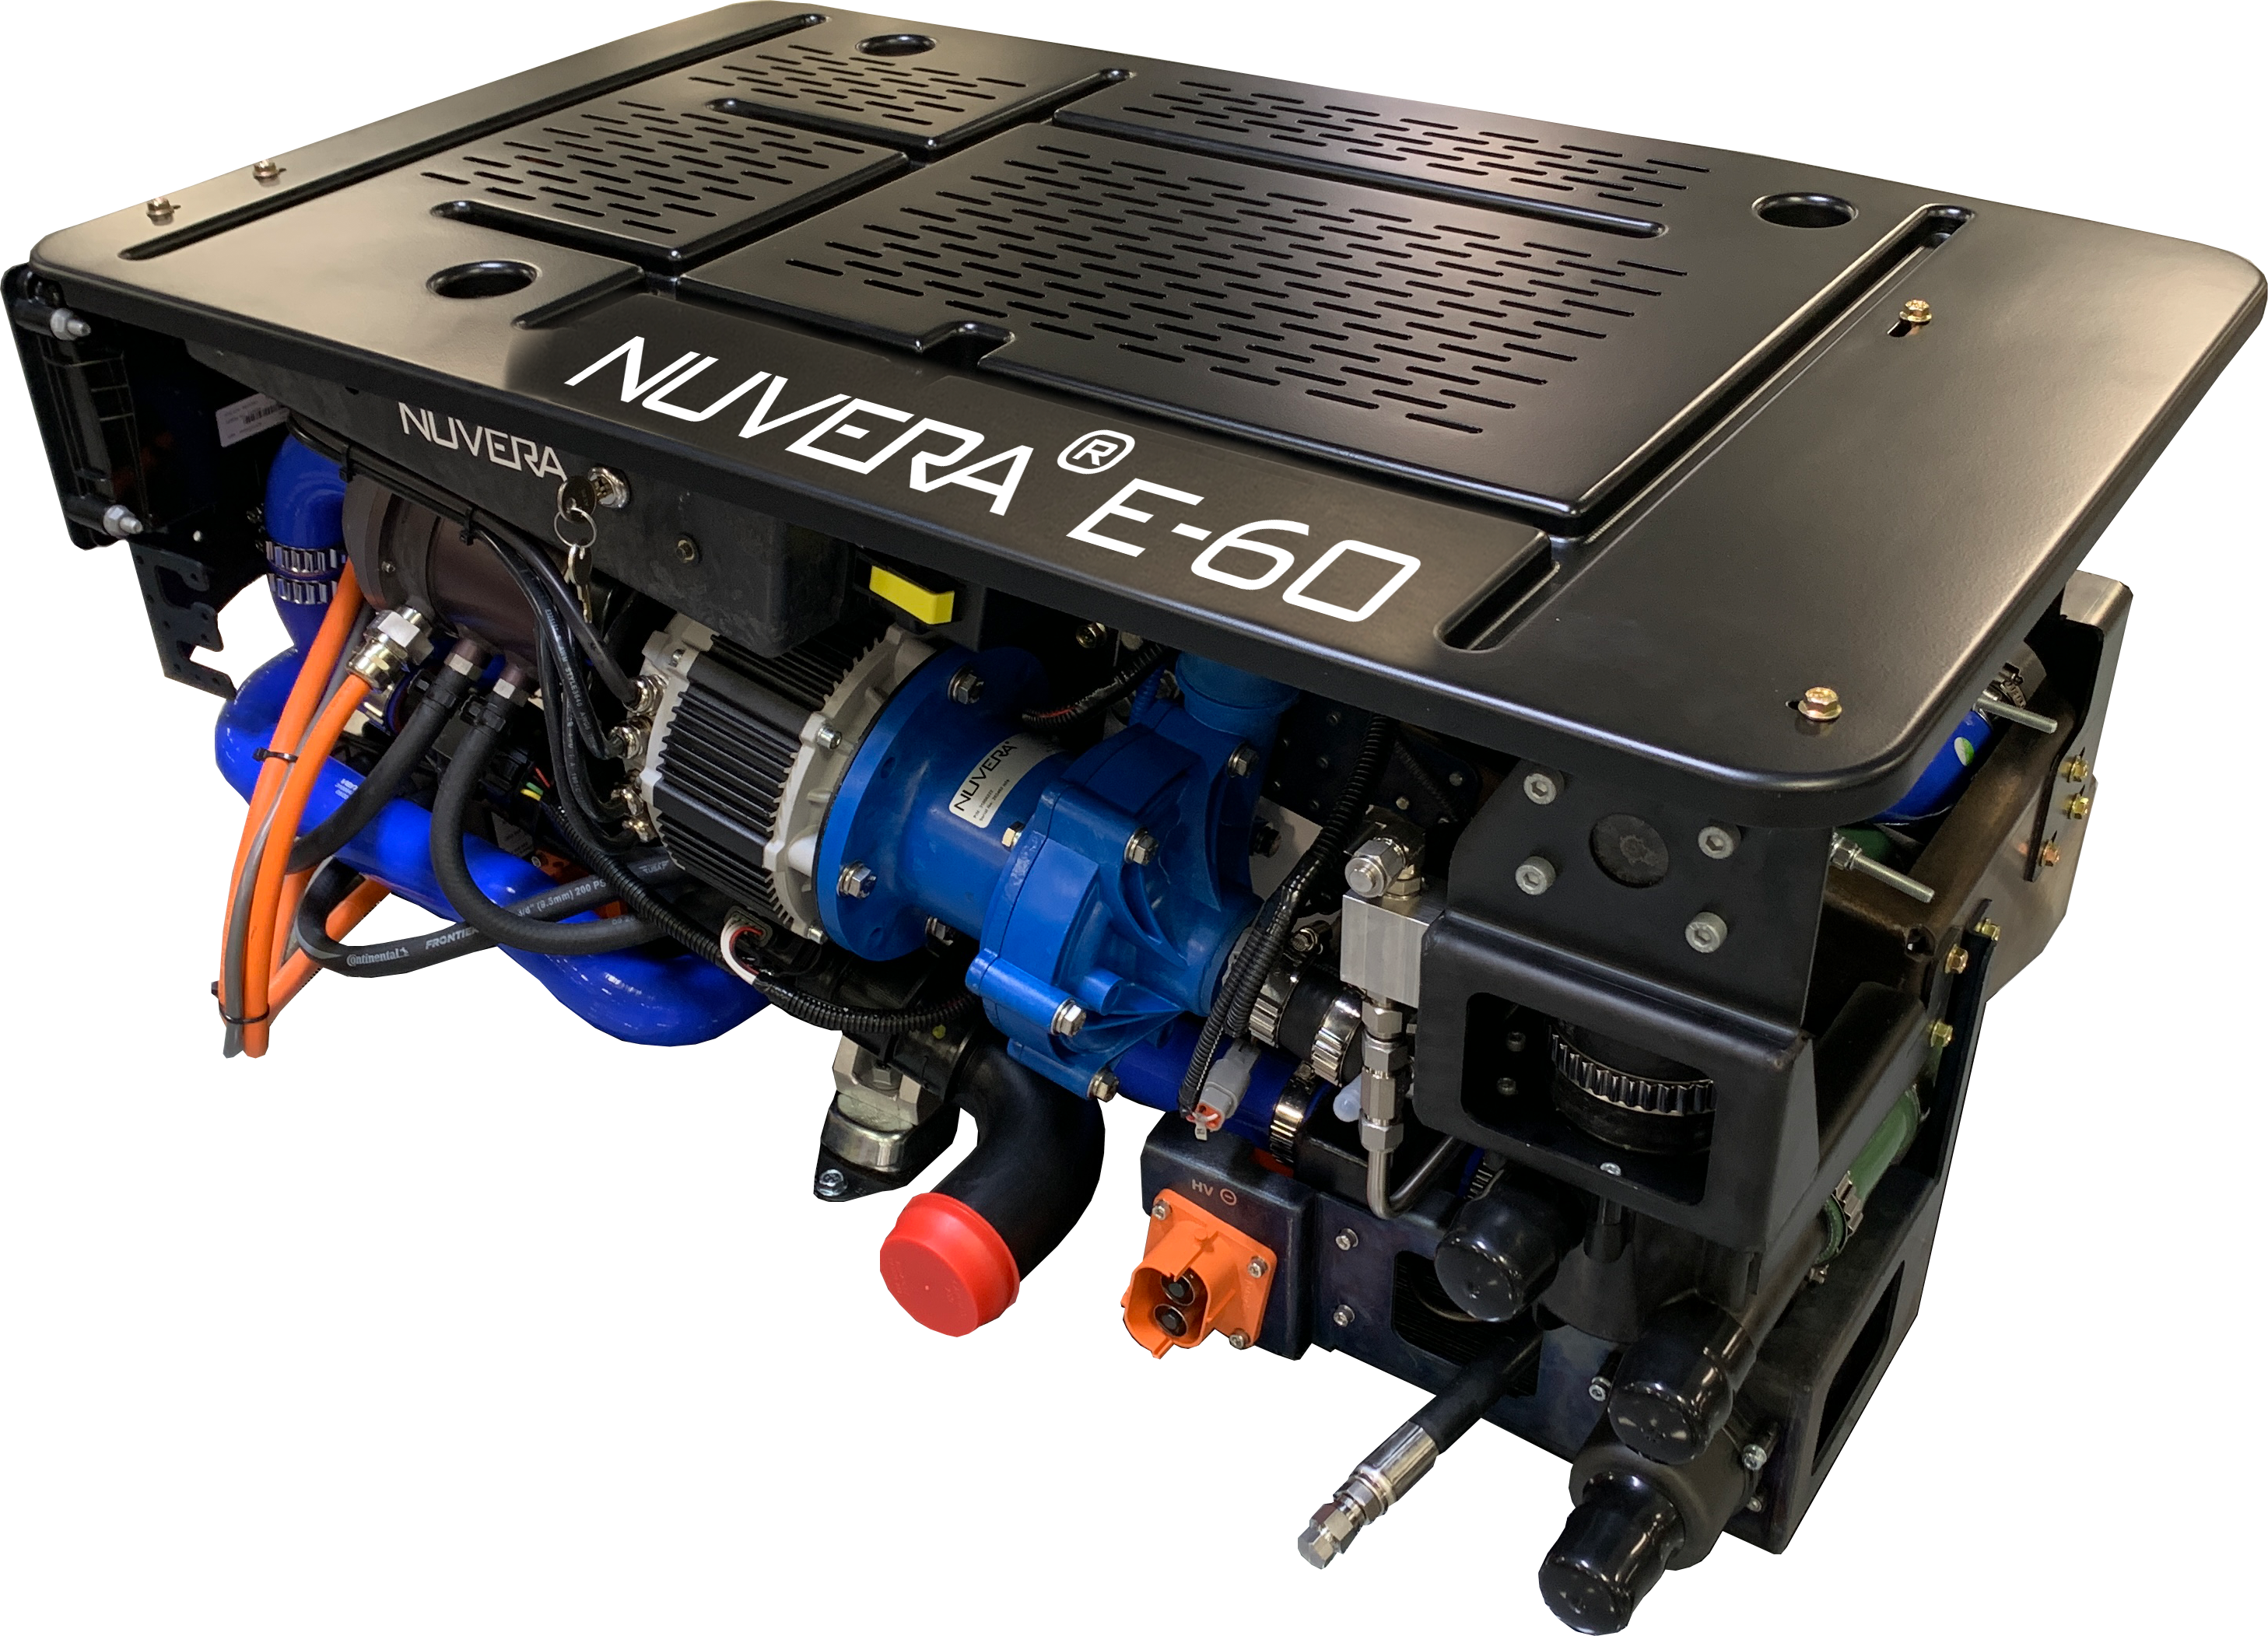 Nuvera Expands Product Line with Launch of E-60 Fuel Cell Engine